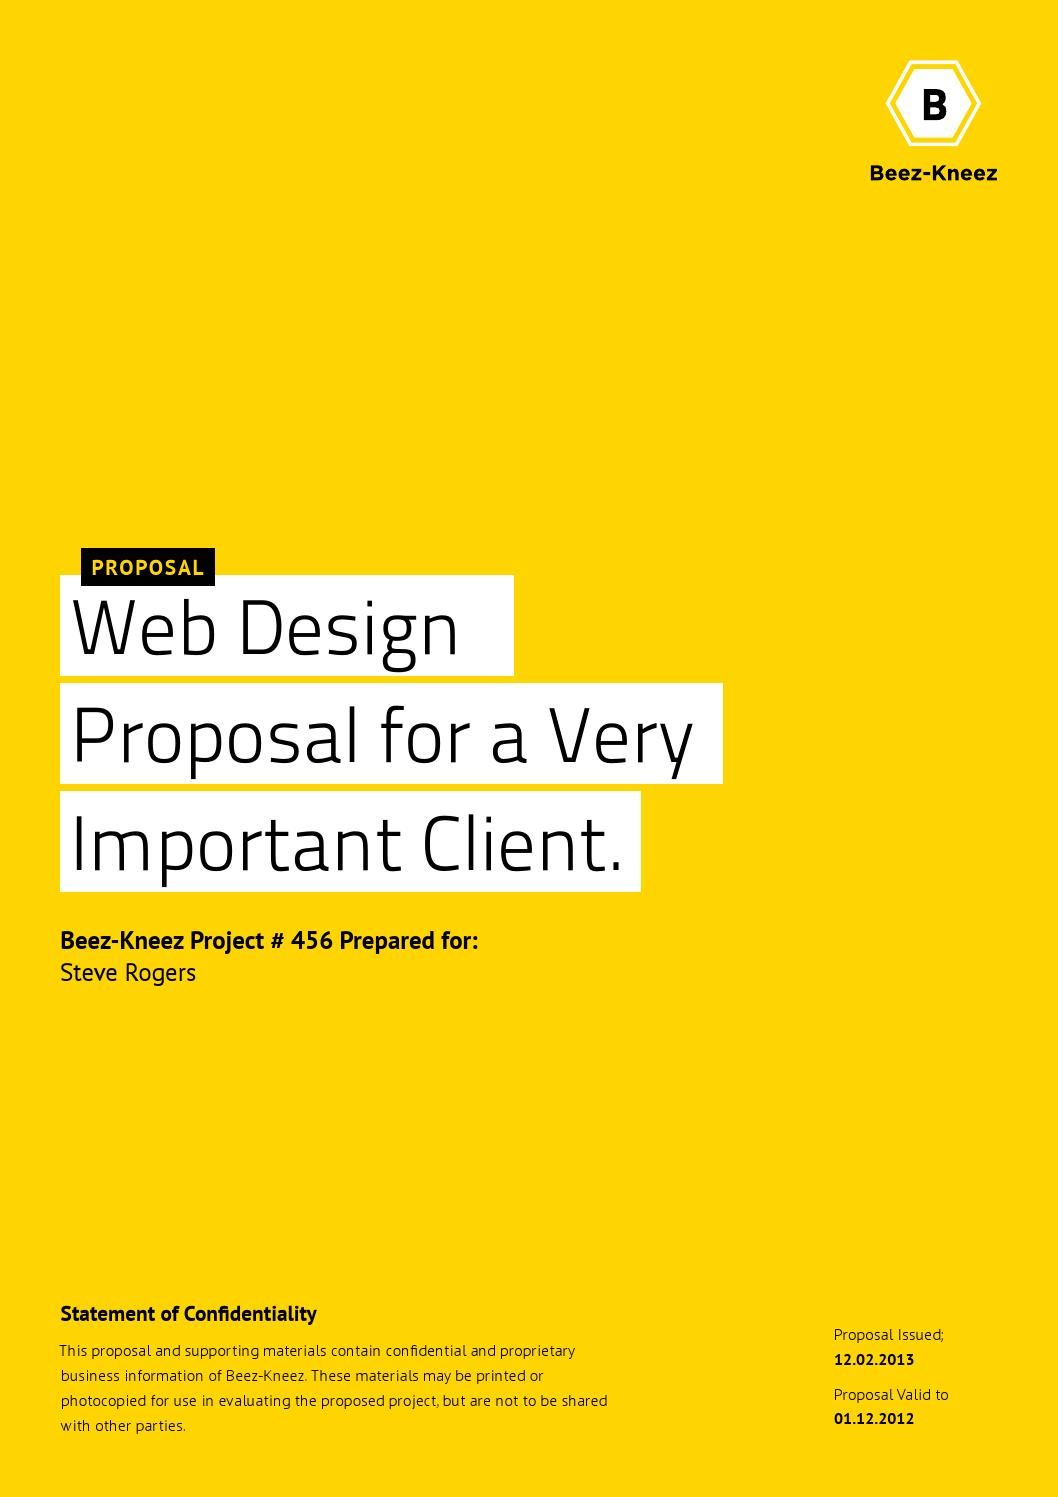 Neue Proposal | RFP | Proposal templates, Proposal, Service design